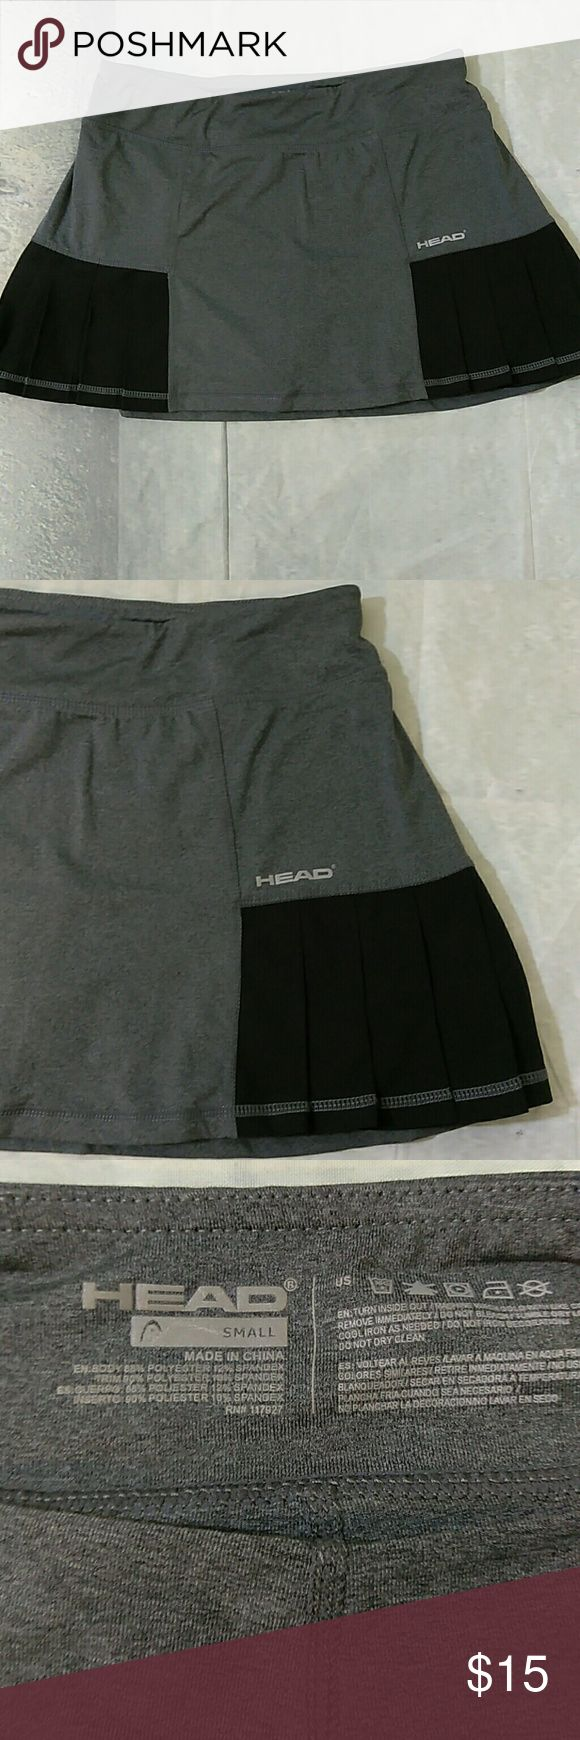 "Head Running Skort Cute black and gray skort with side pleats. Size small 88% Polyester 12% Spandex  Waist measures 13"" Overall Length 11.5""  Inseam in hidden short is 2.5""  Gently owned. No flaws.  Thank you! Head Shorts Skorts"